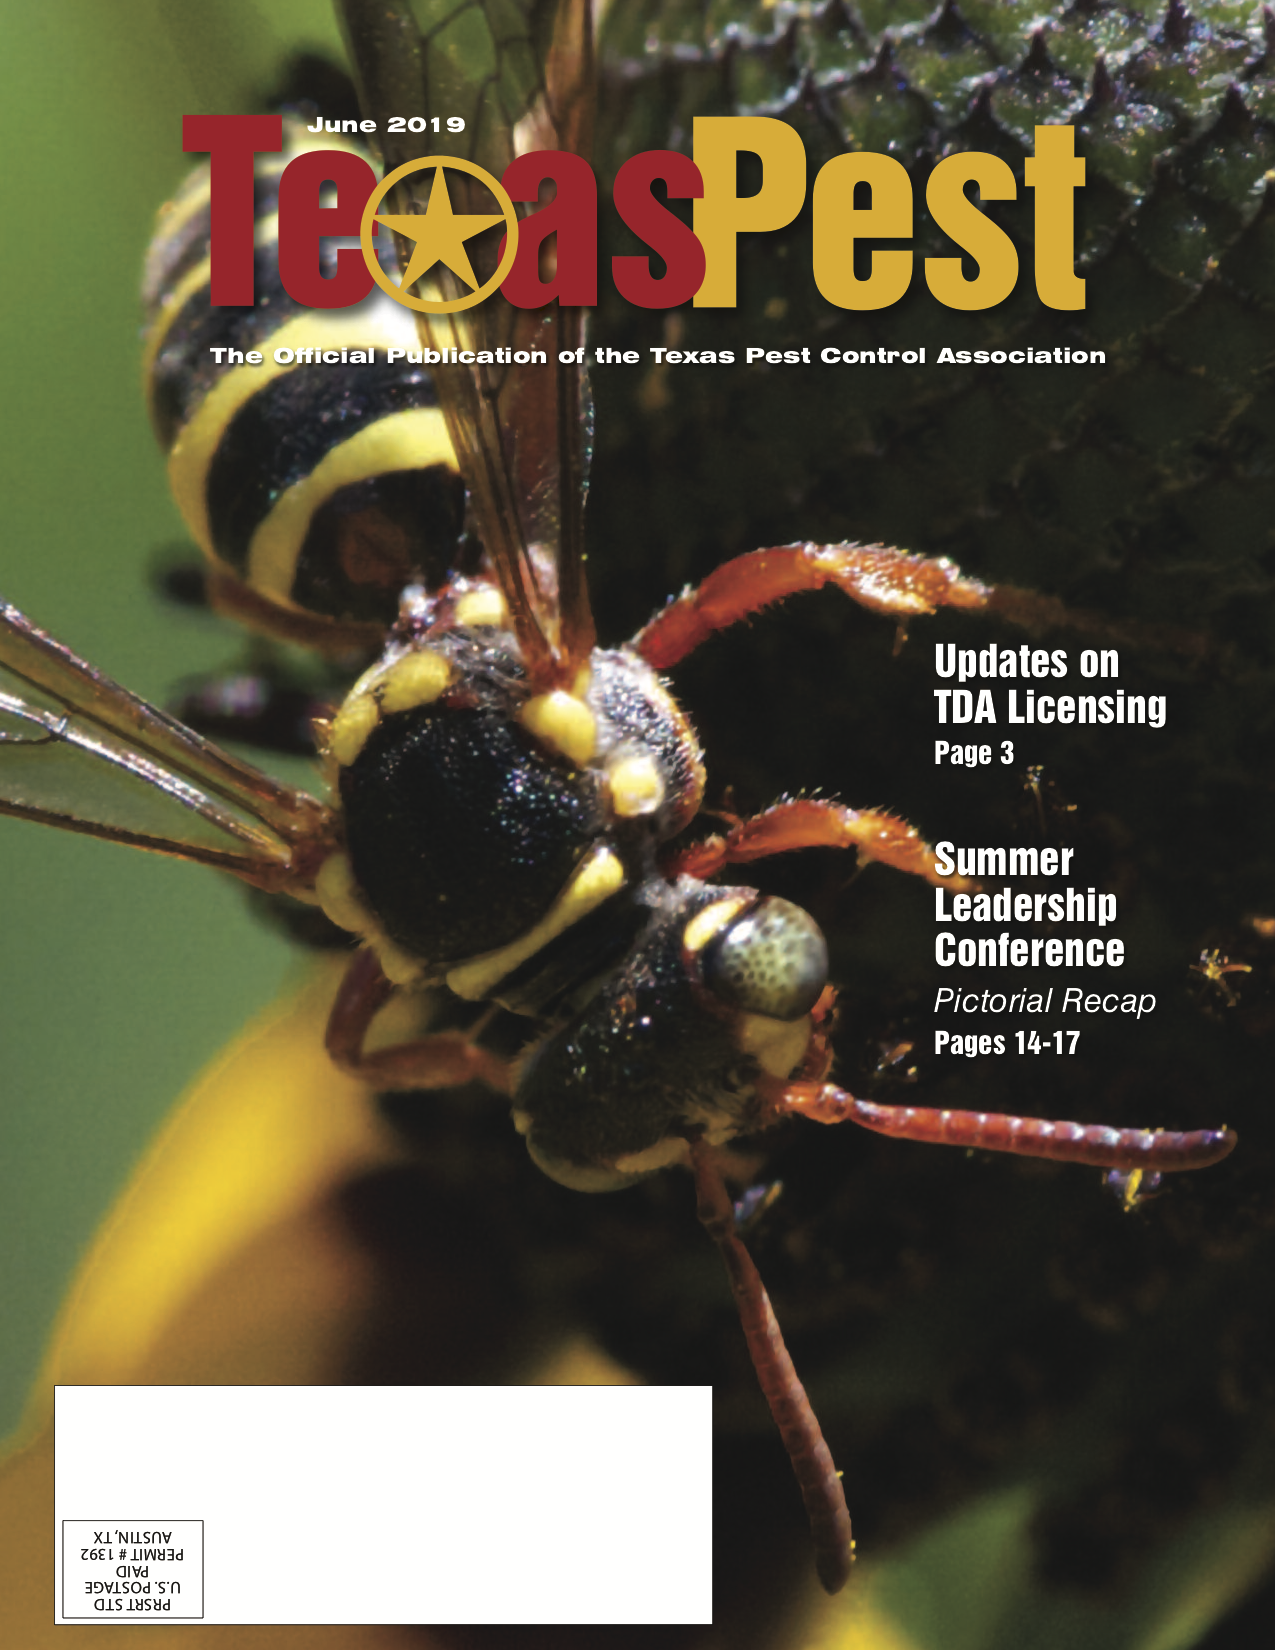 Texas Pest Magazine June Issue Cover